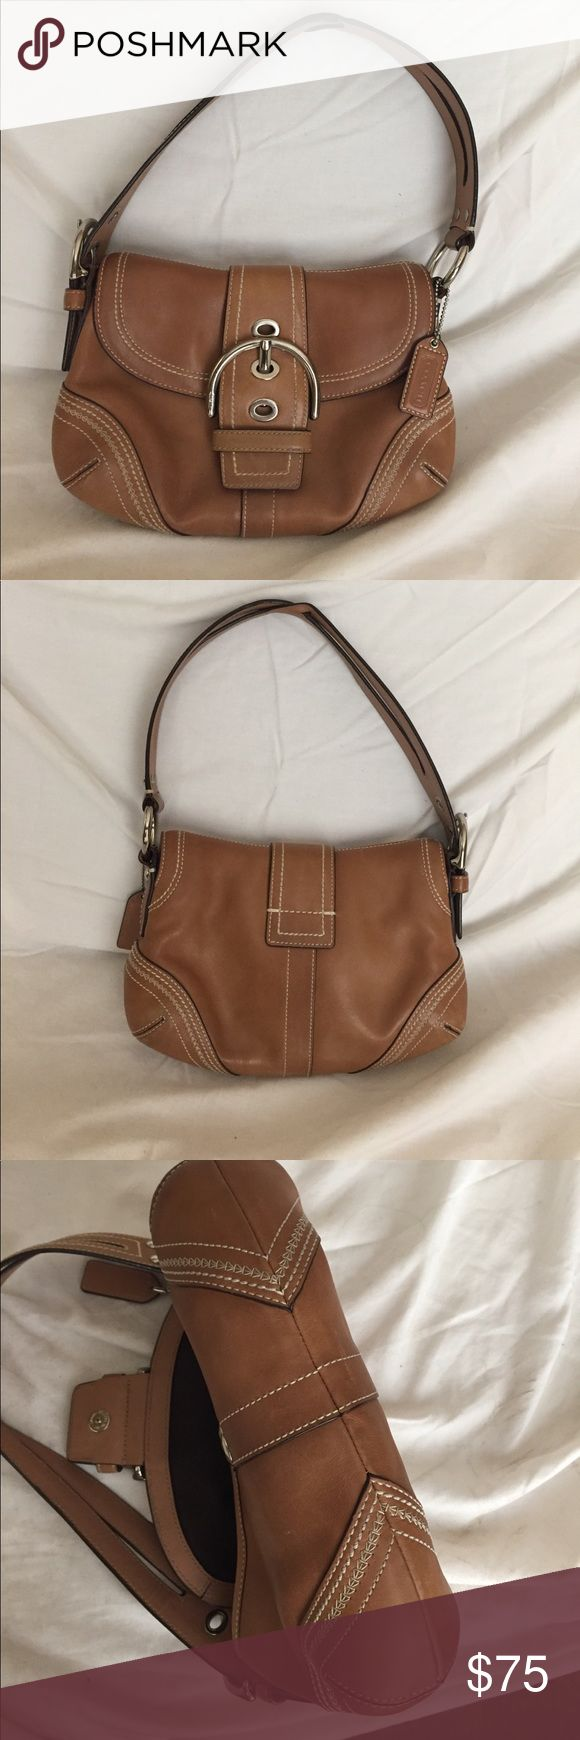 Coach Soho medium size handbag Gorgeous vintage camel colored so ho handbag from coach in excellent used condition. Purse has two main compartment's and a zippered pocket on the inside, silver hardware and signature stitching on the outside. This is a 100% genuine leather all leather quality well made handbag that will last a lifetime if cared for properly. It's beautiful and coordinates well with almost anything you might wear. Coach Bags Shoulder Bags